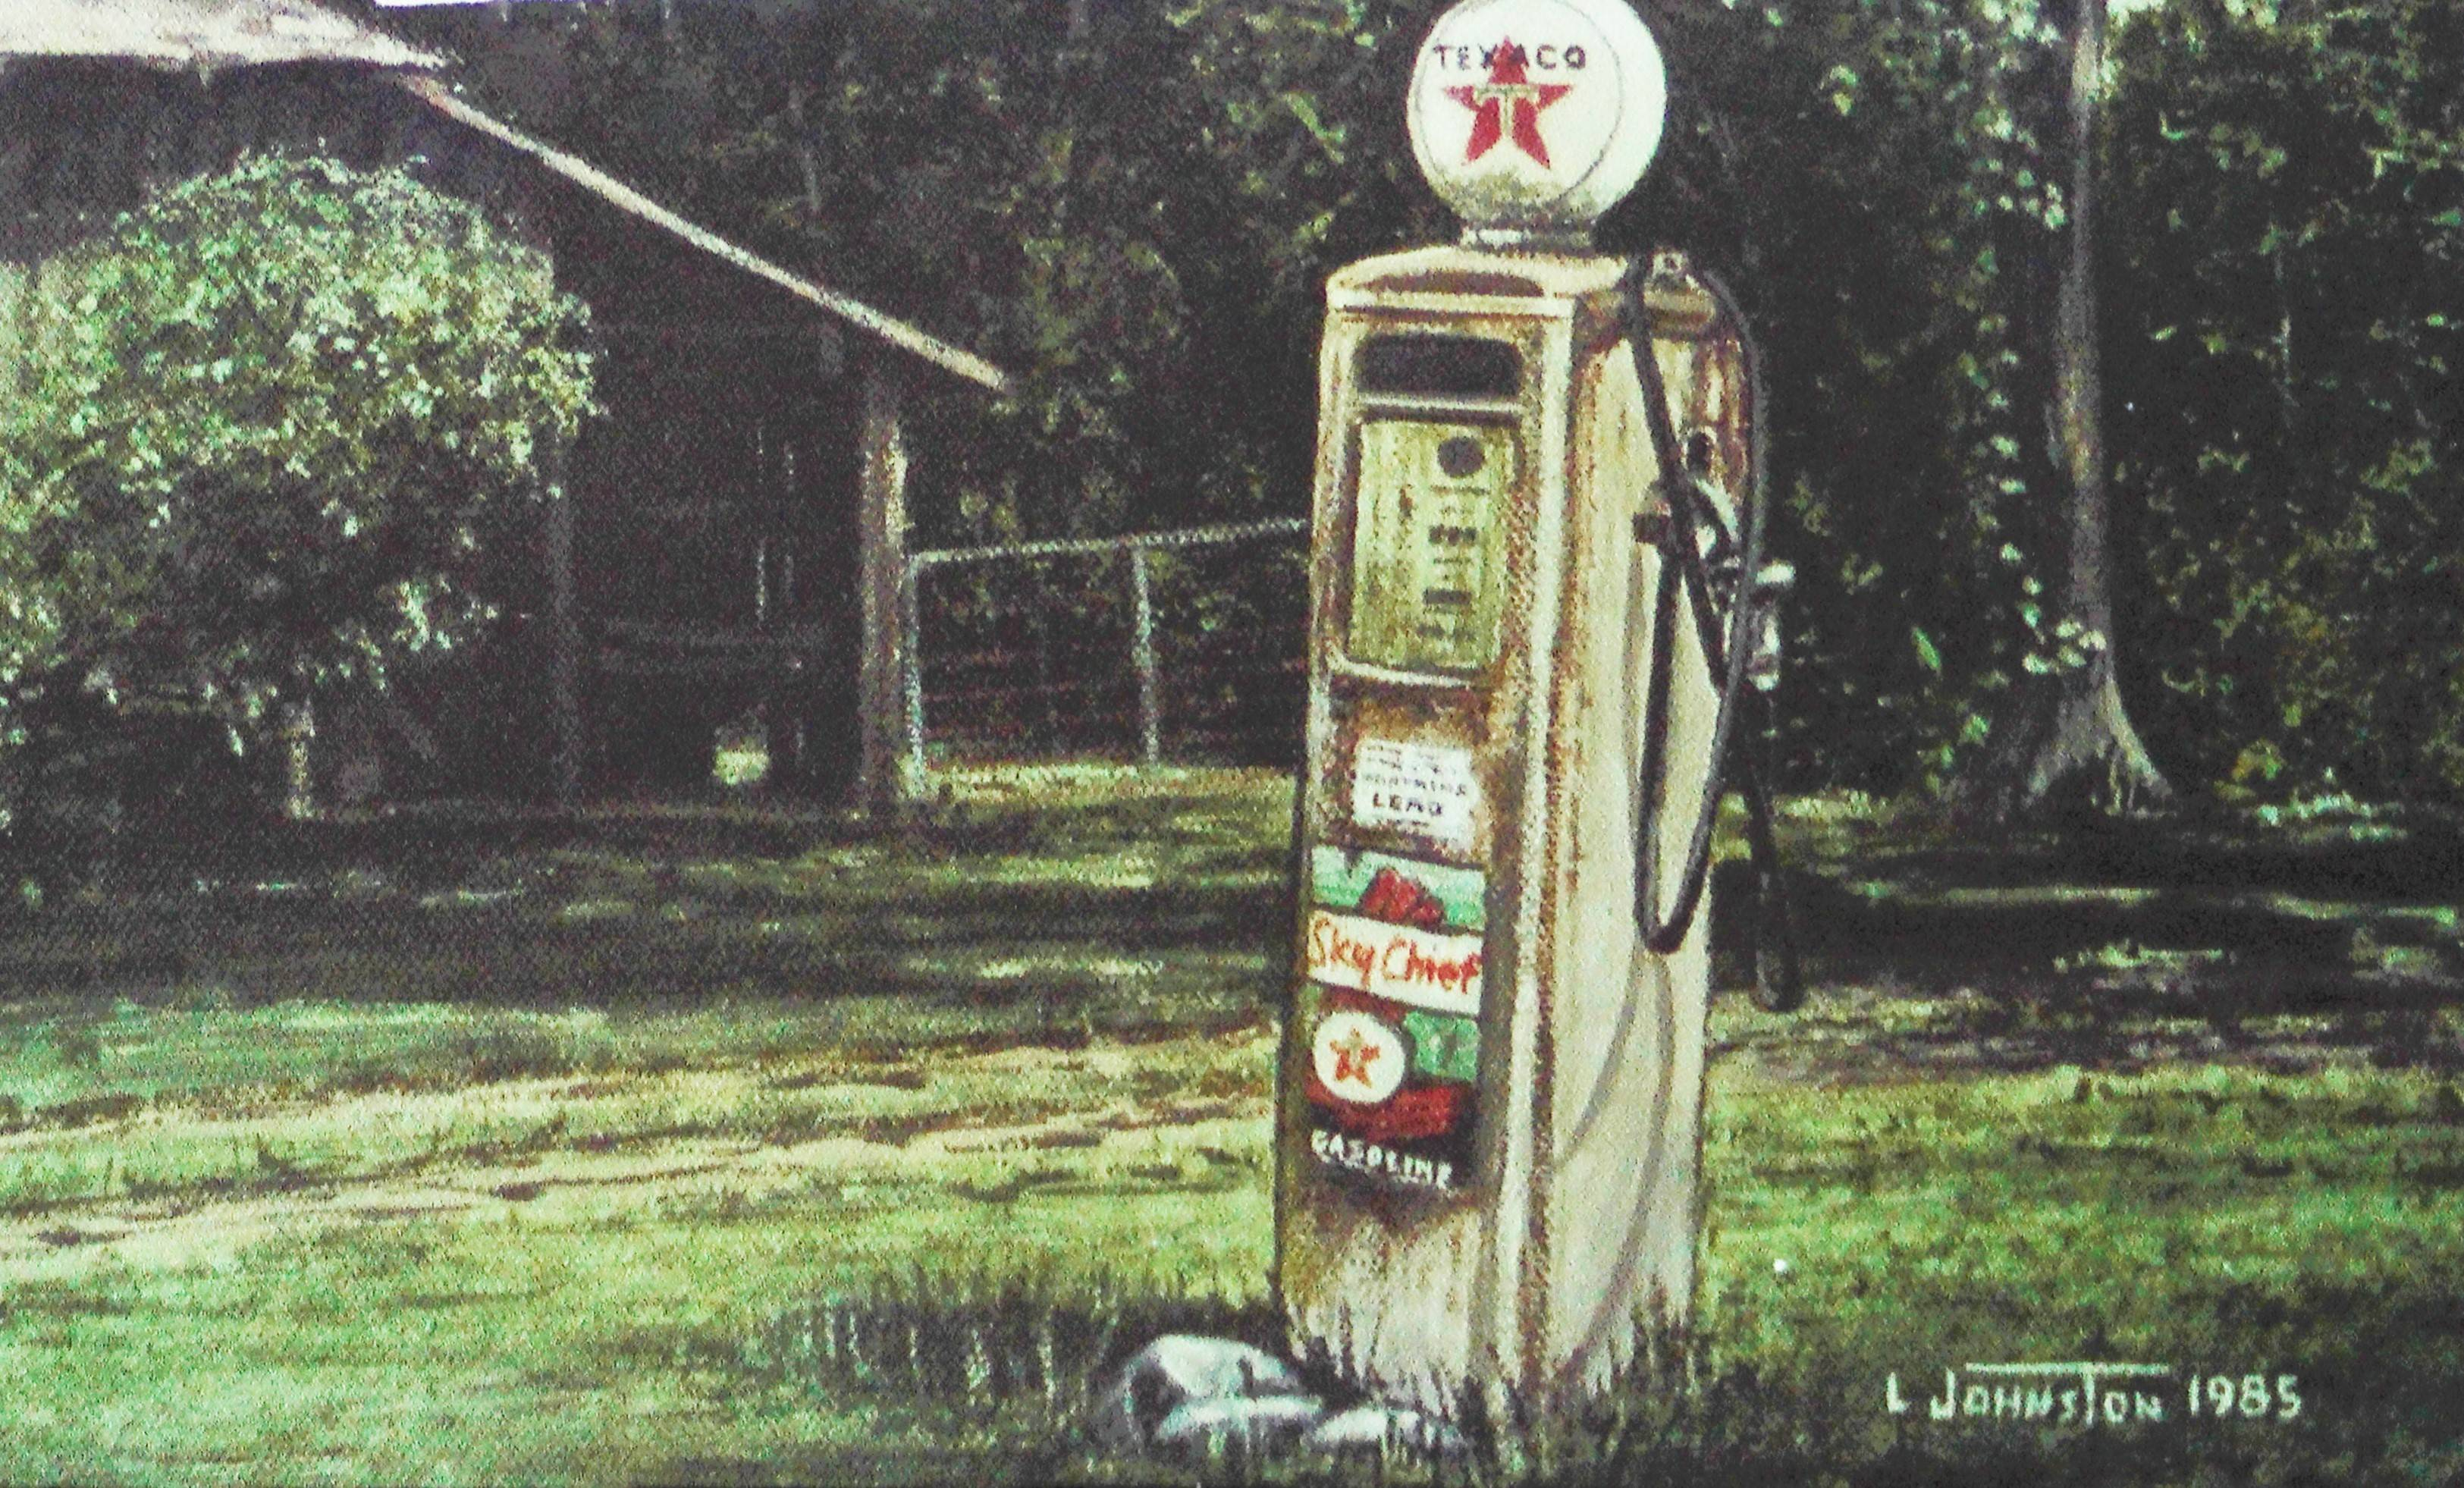 History of a Painting - Brown Barn with Texaco pump